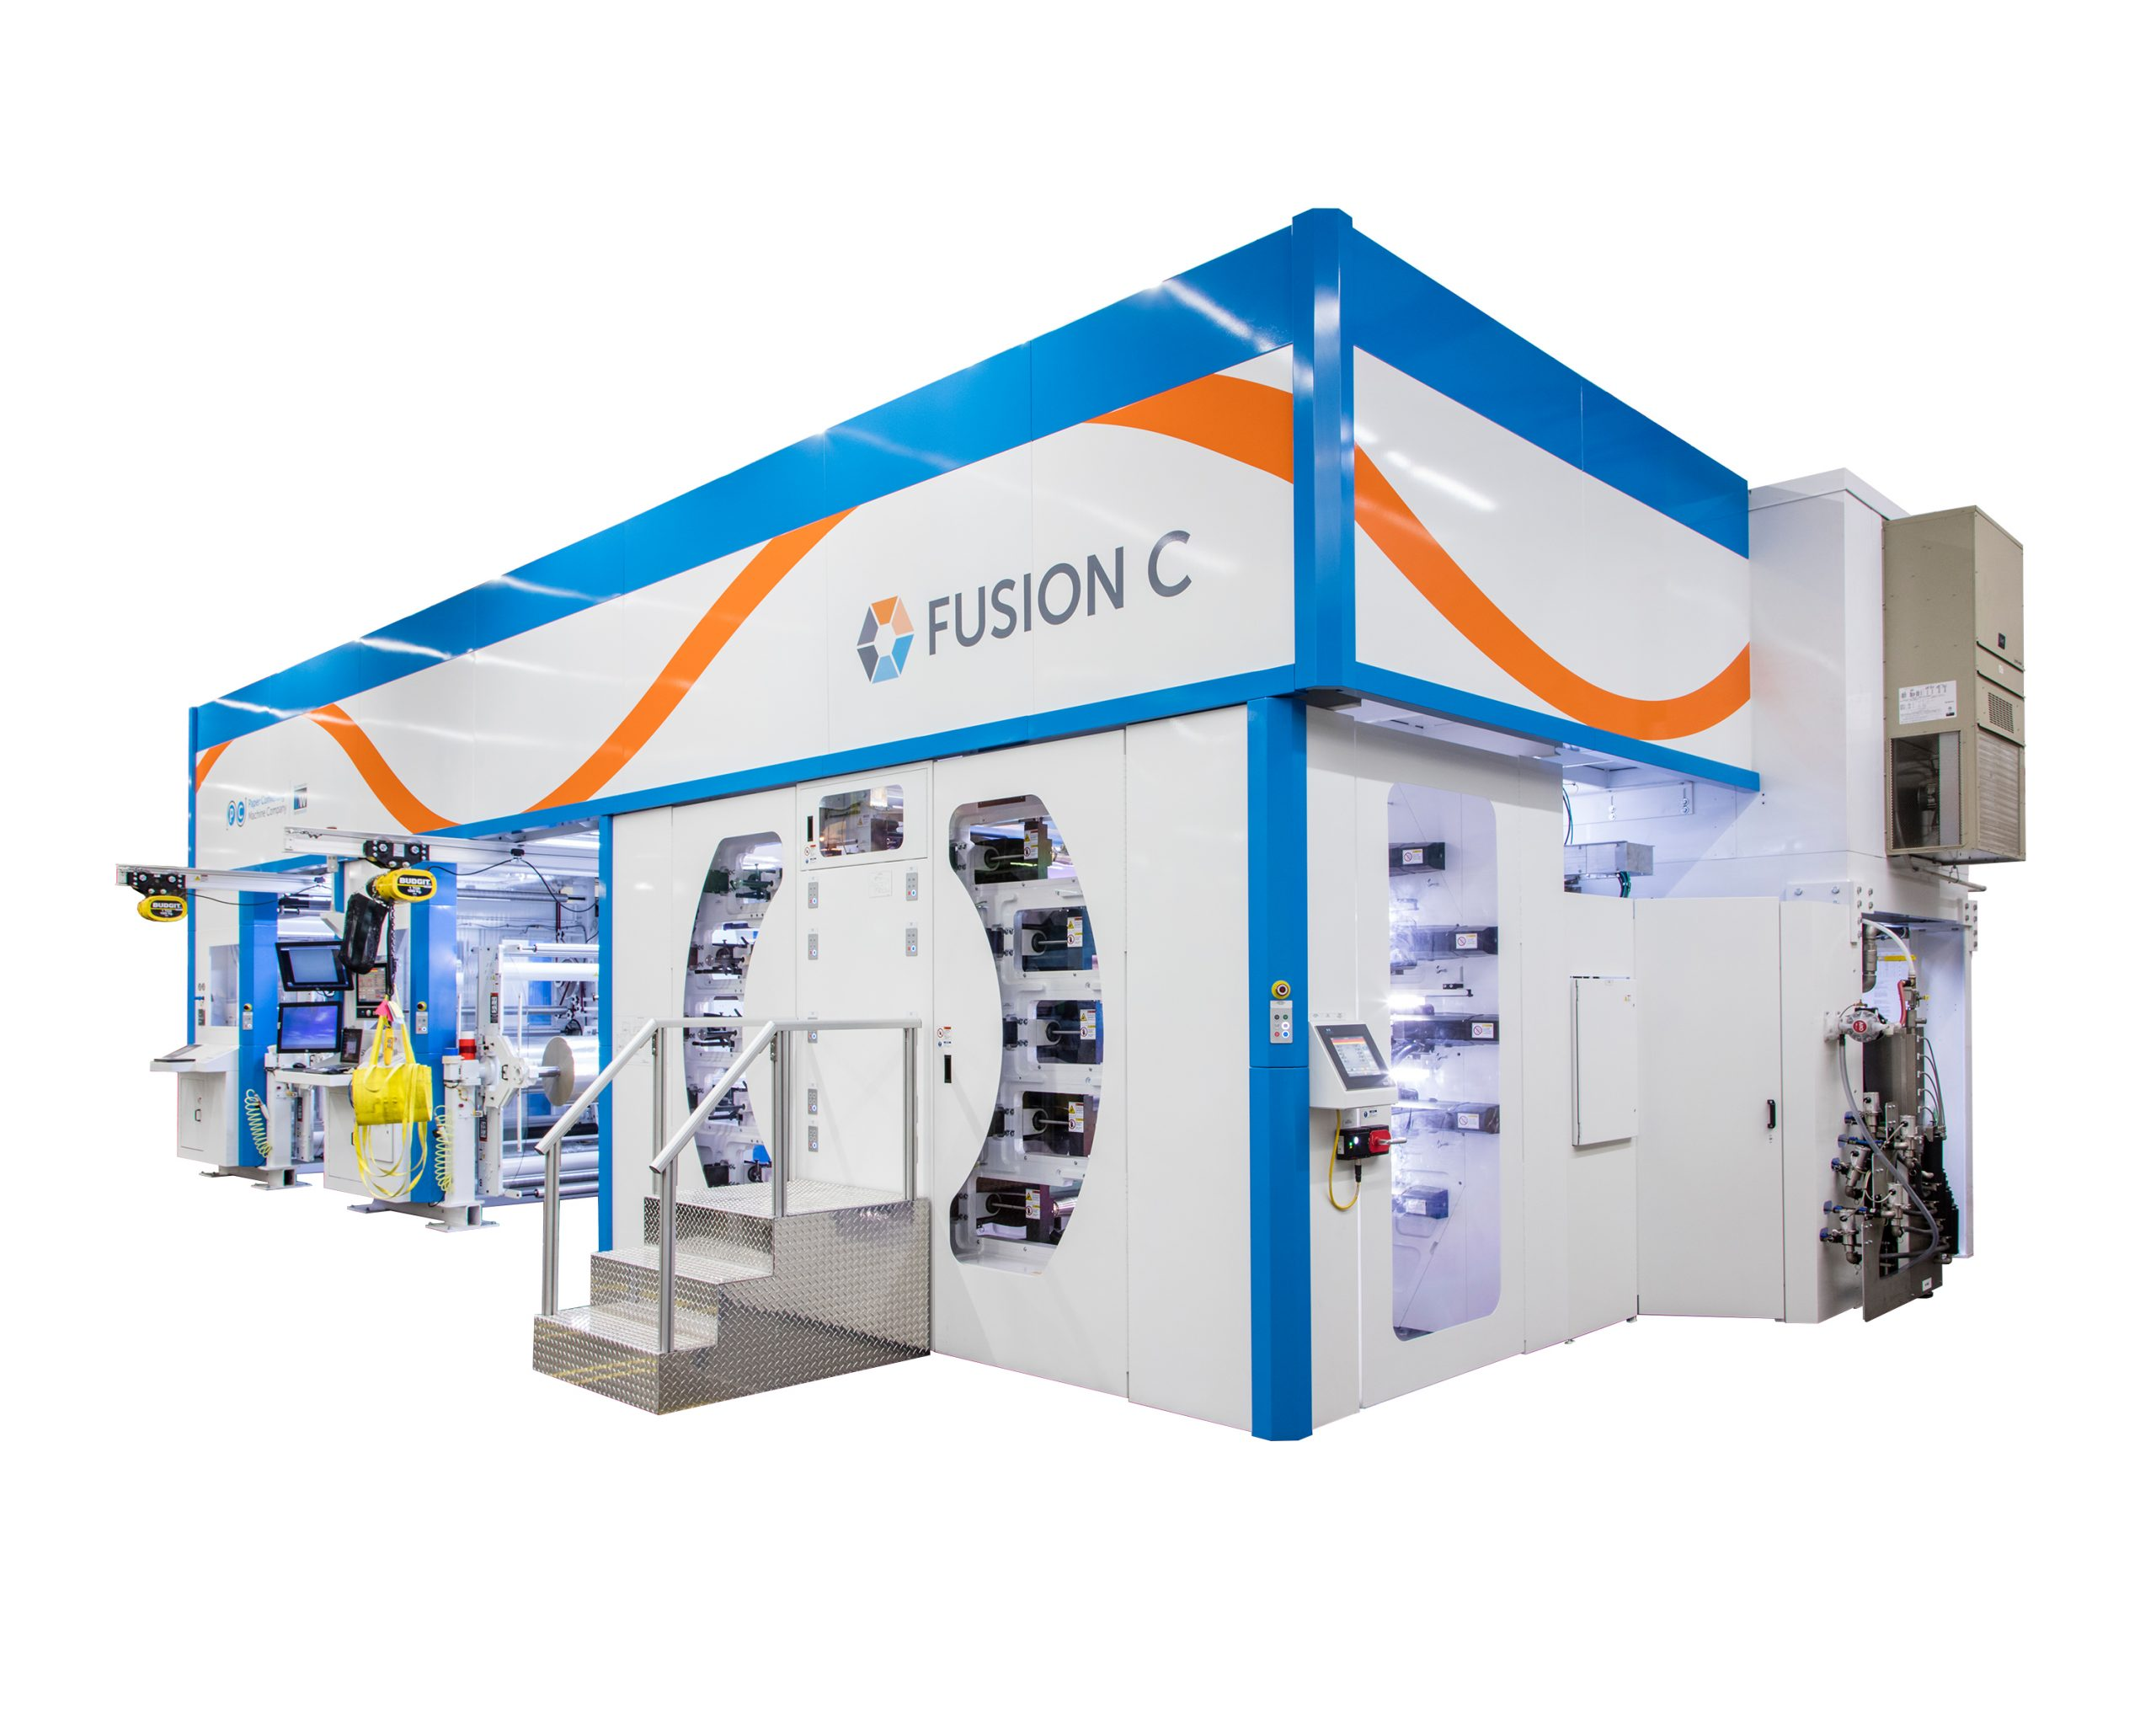 PCMC's Fusion C now equipped to run Gelflex-EB® inks at 400 meters per minute